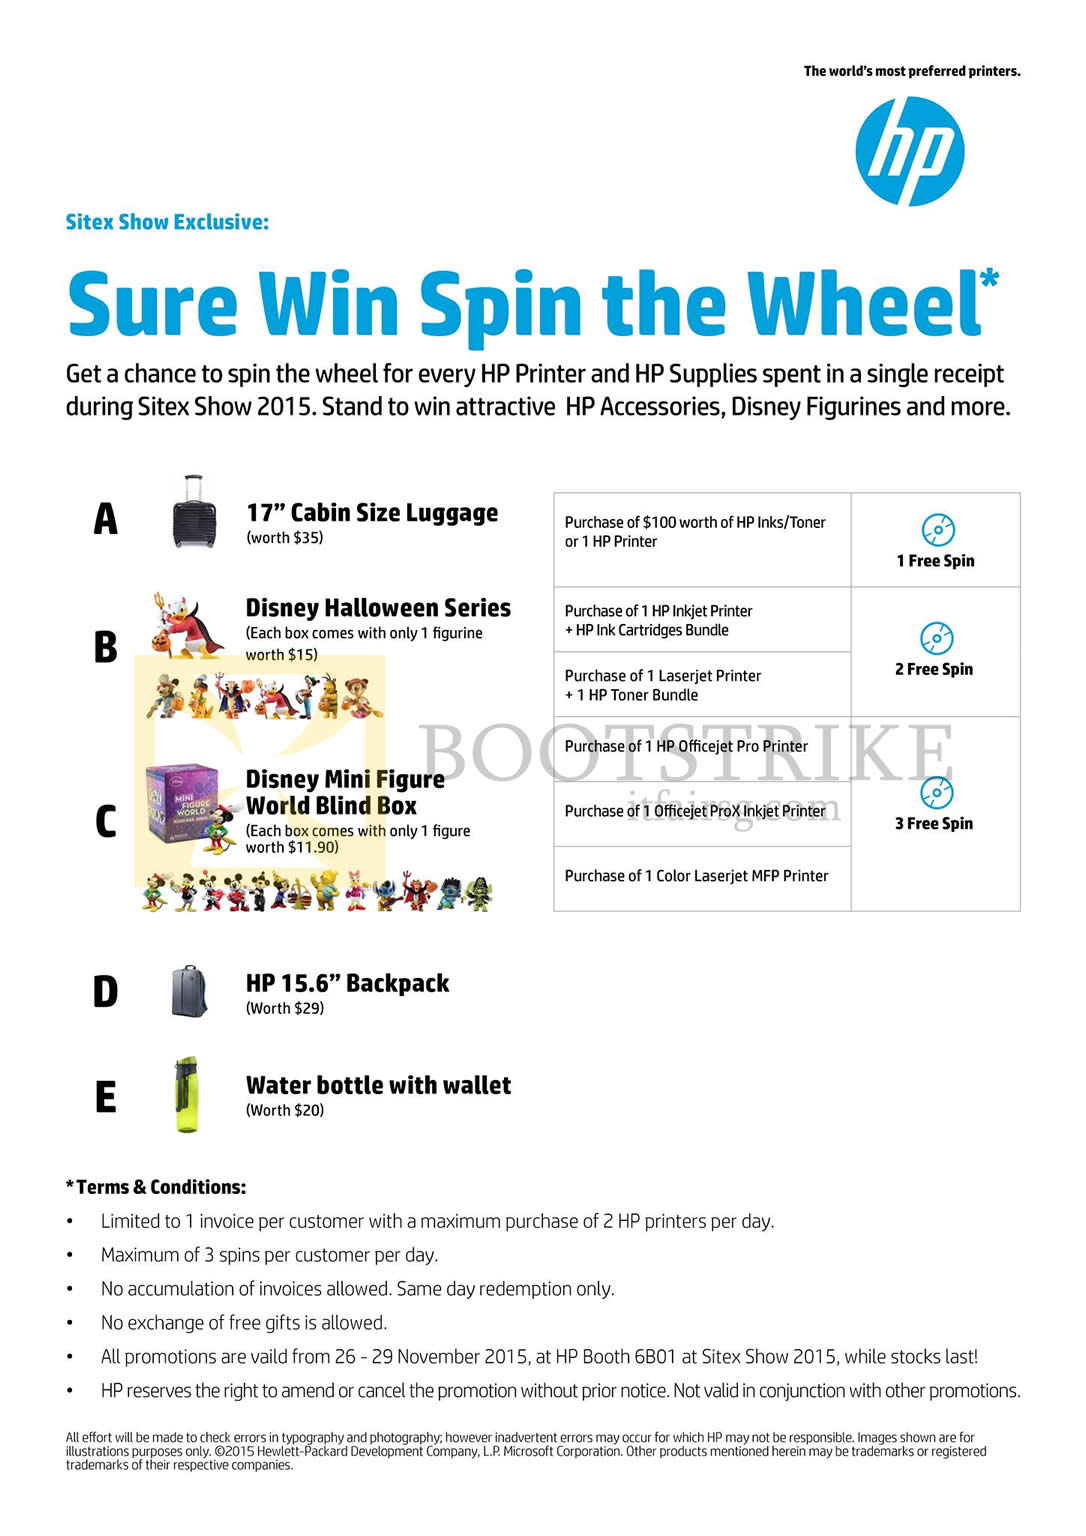 SITEX 2015 price list image brochure of HP Printers Sure-Win Spin The Wheel